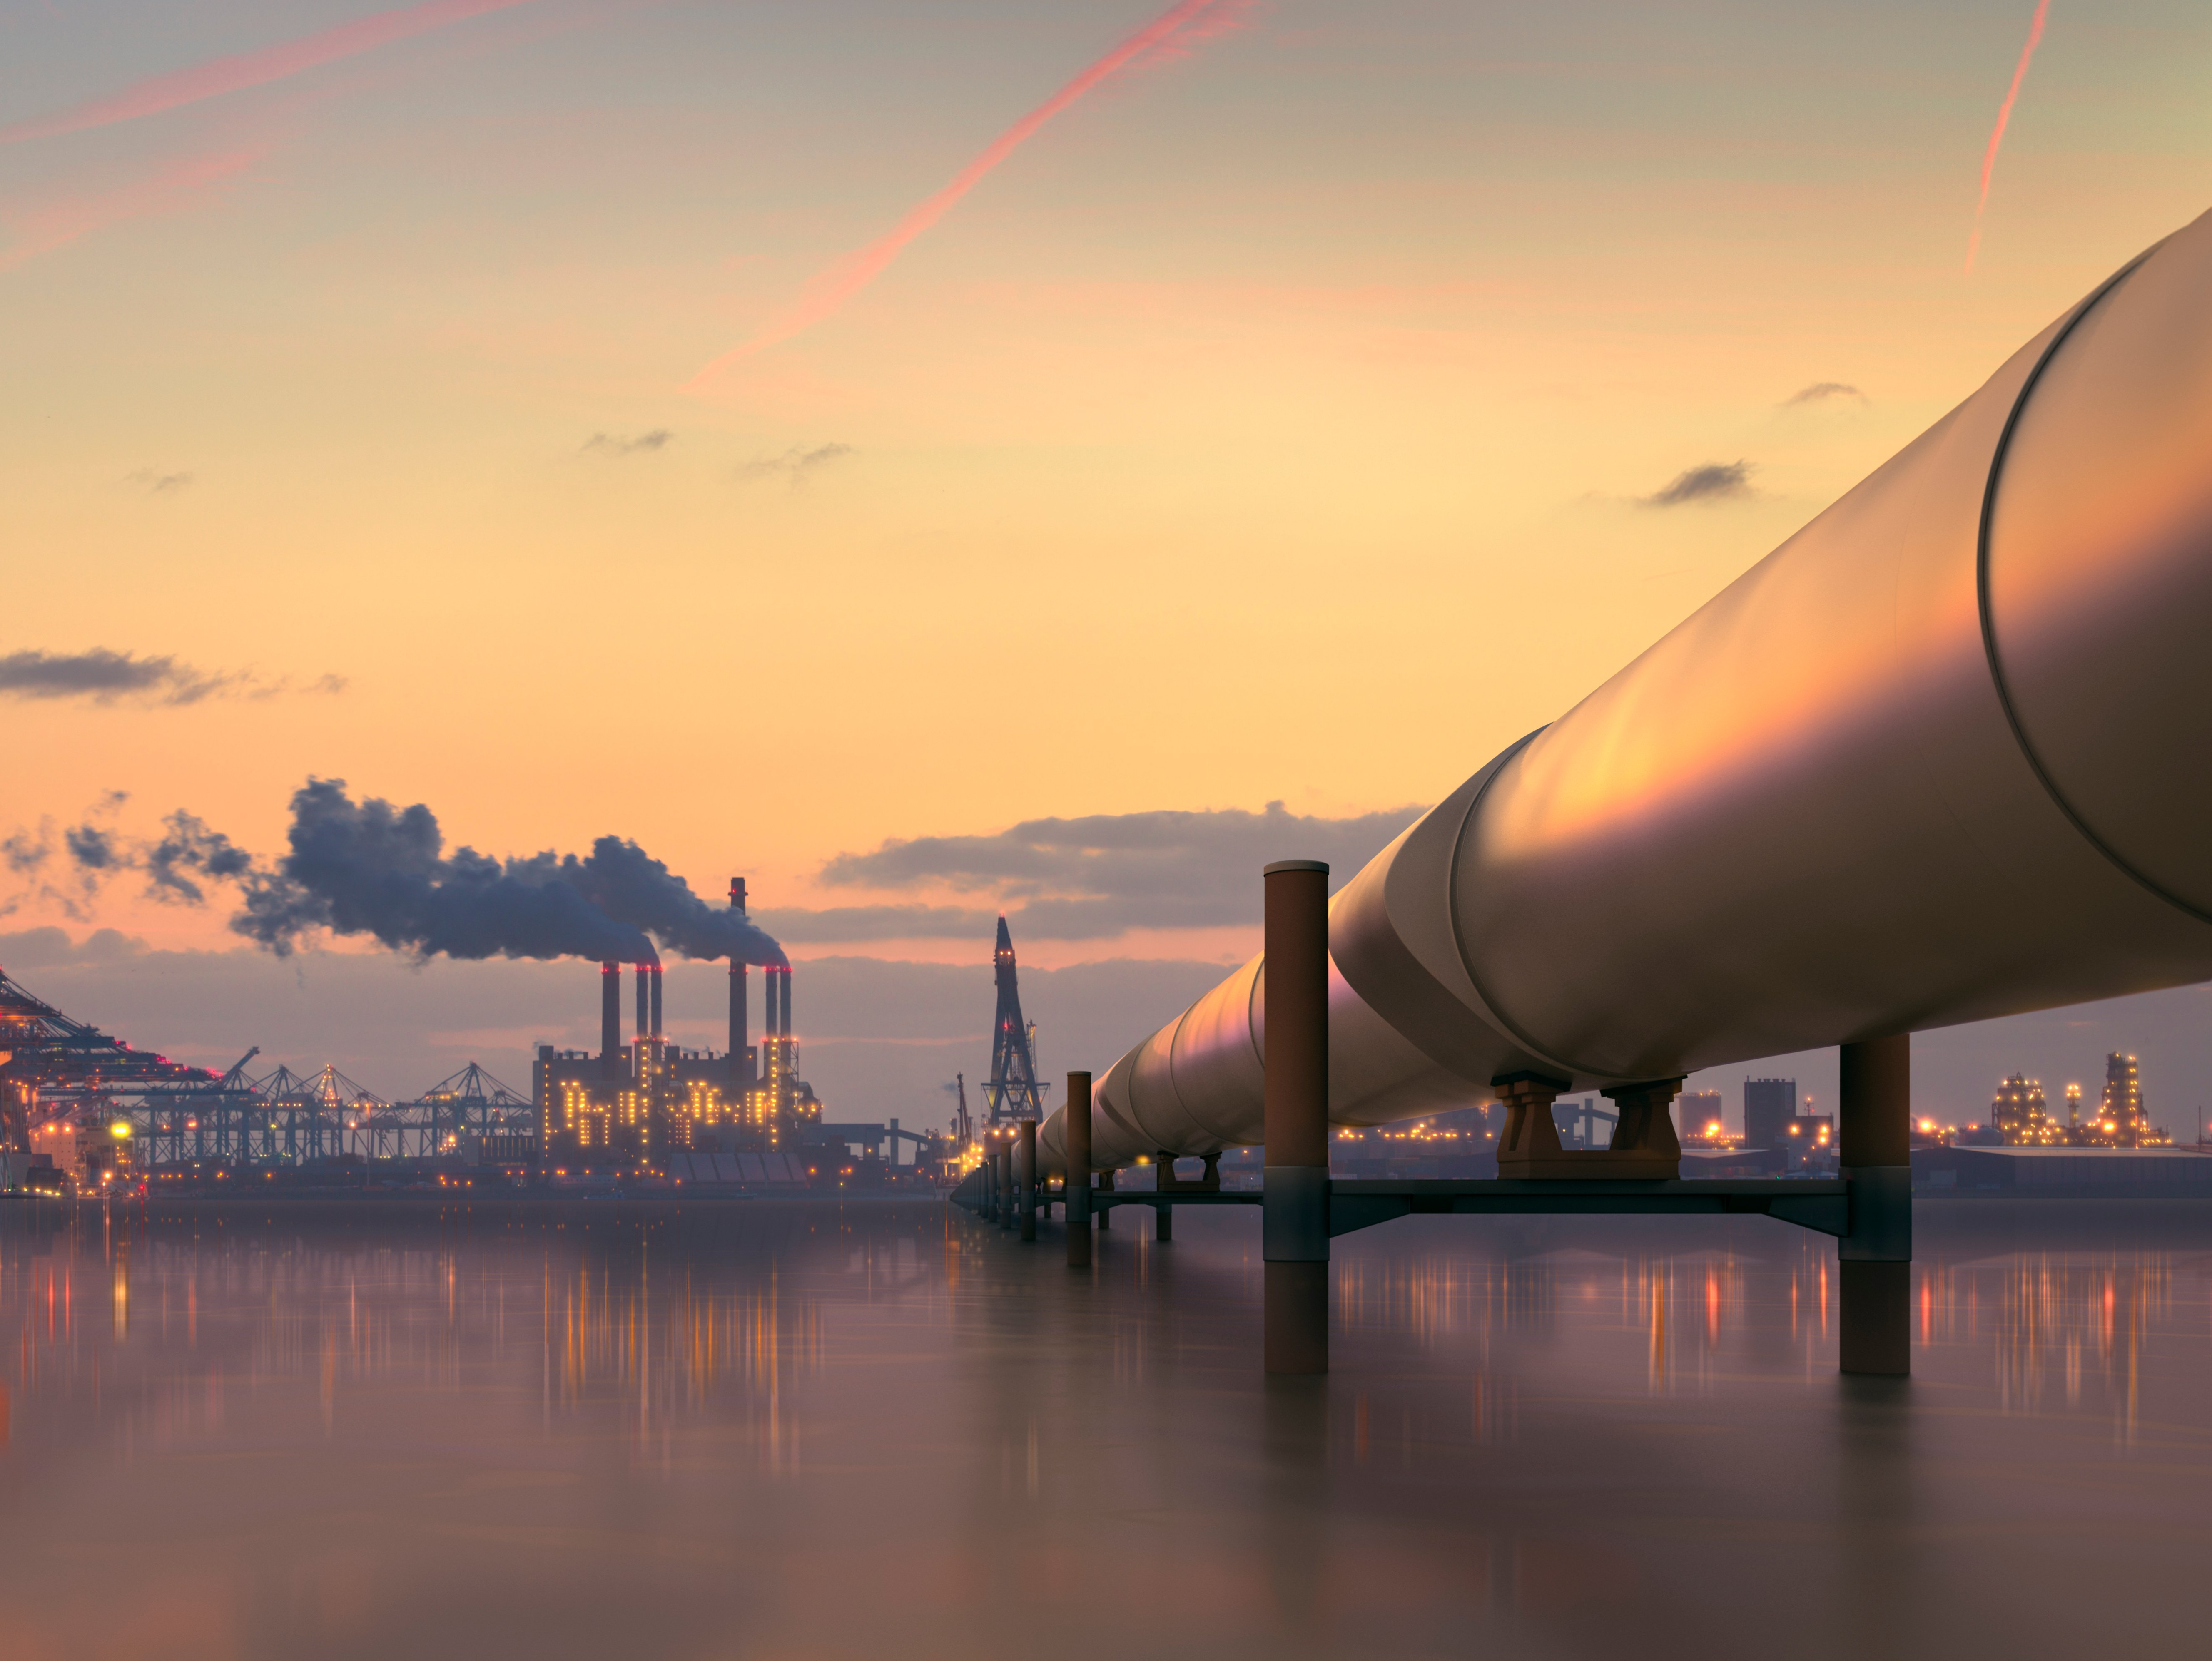 Regaining Our Trust in the Security of Our Critical Infrastructure